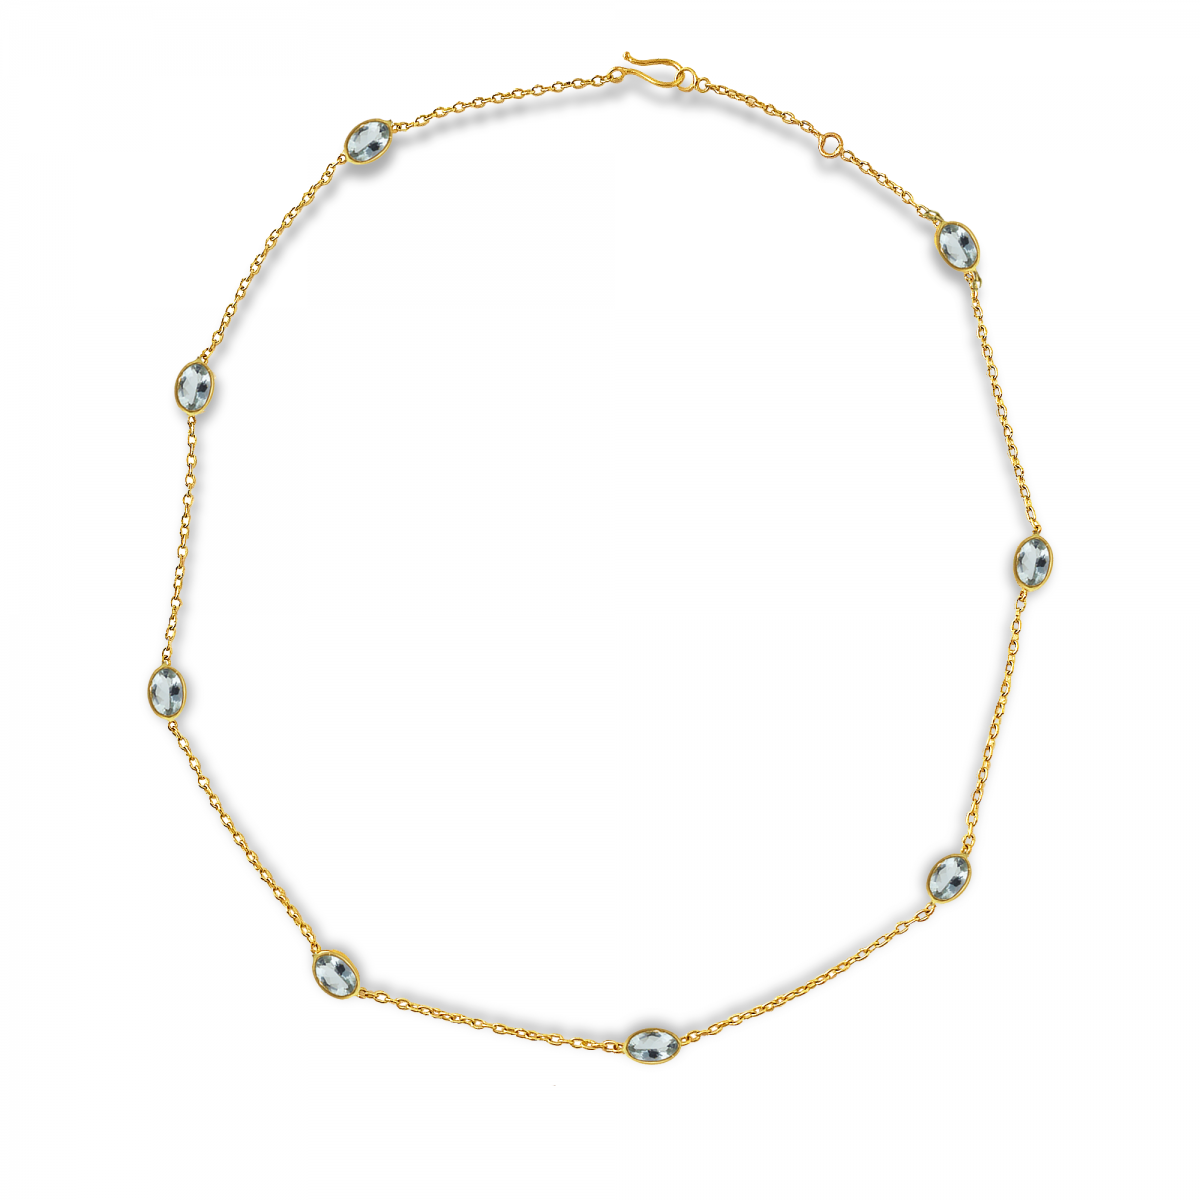 Aquamarine 22k Station Necklace